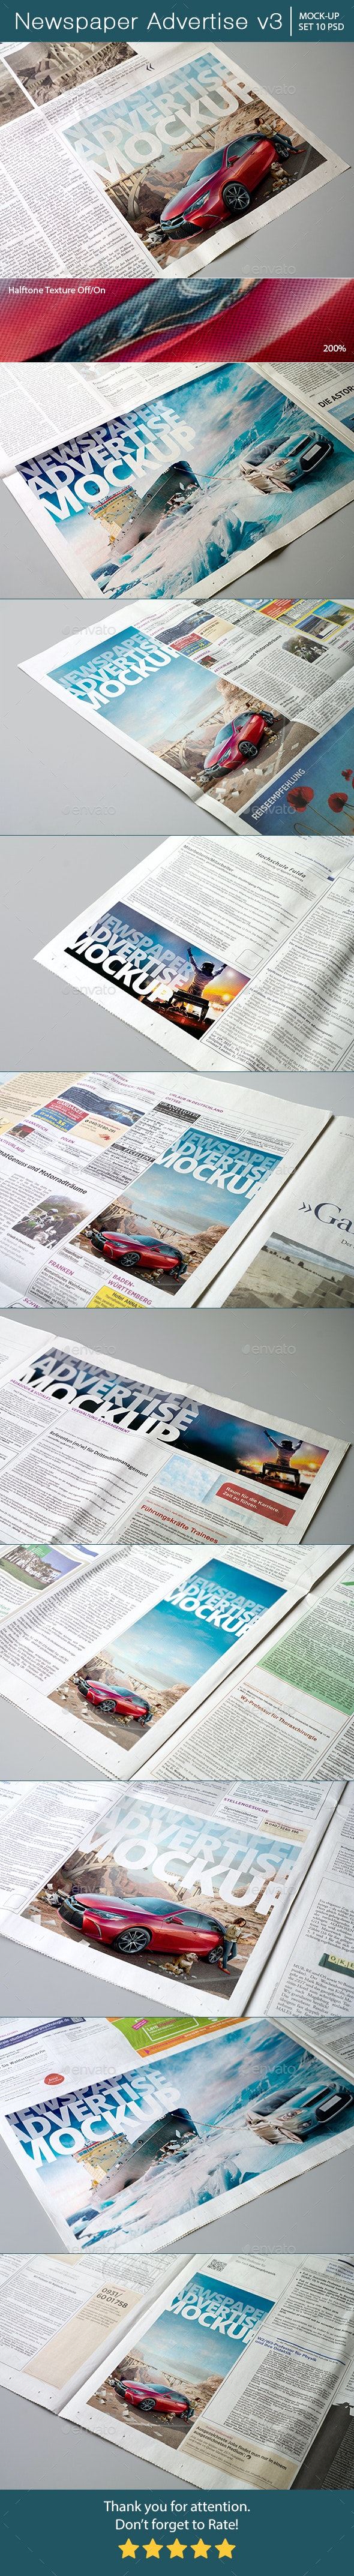 Newspaper Advertise Mockup v3 - Miscellaneous Print